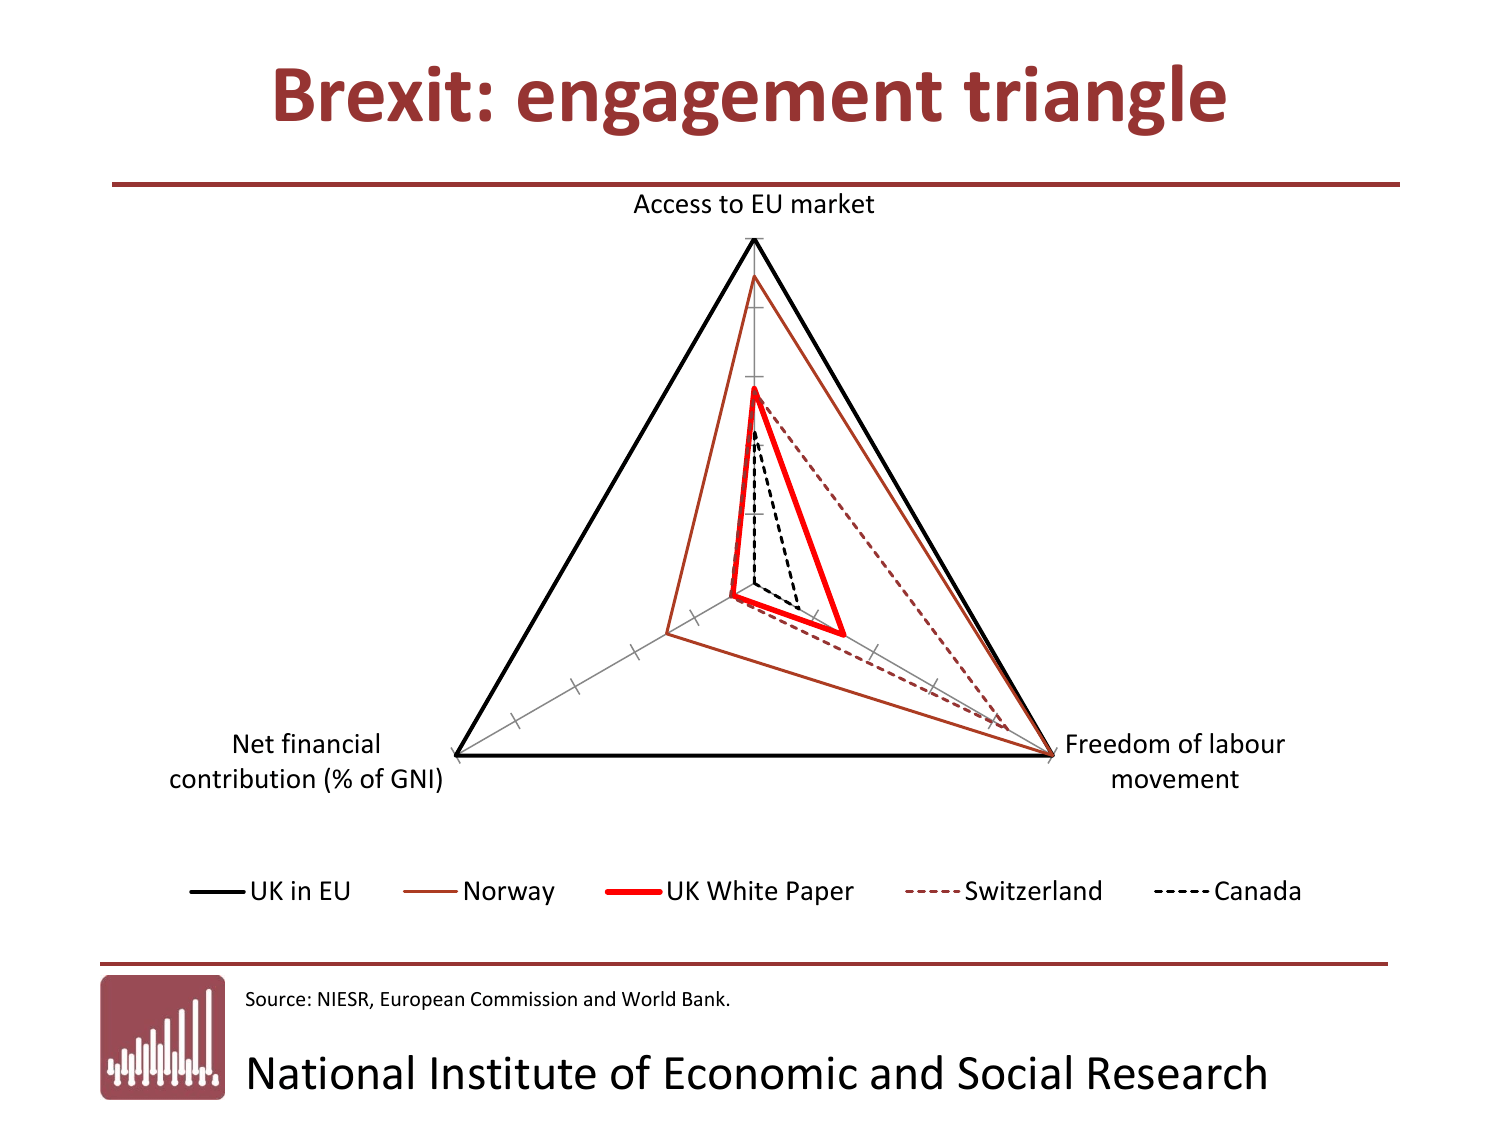 NIESR The Great Brexit Tradeoff Triangle